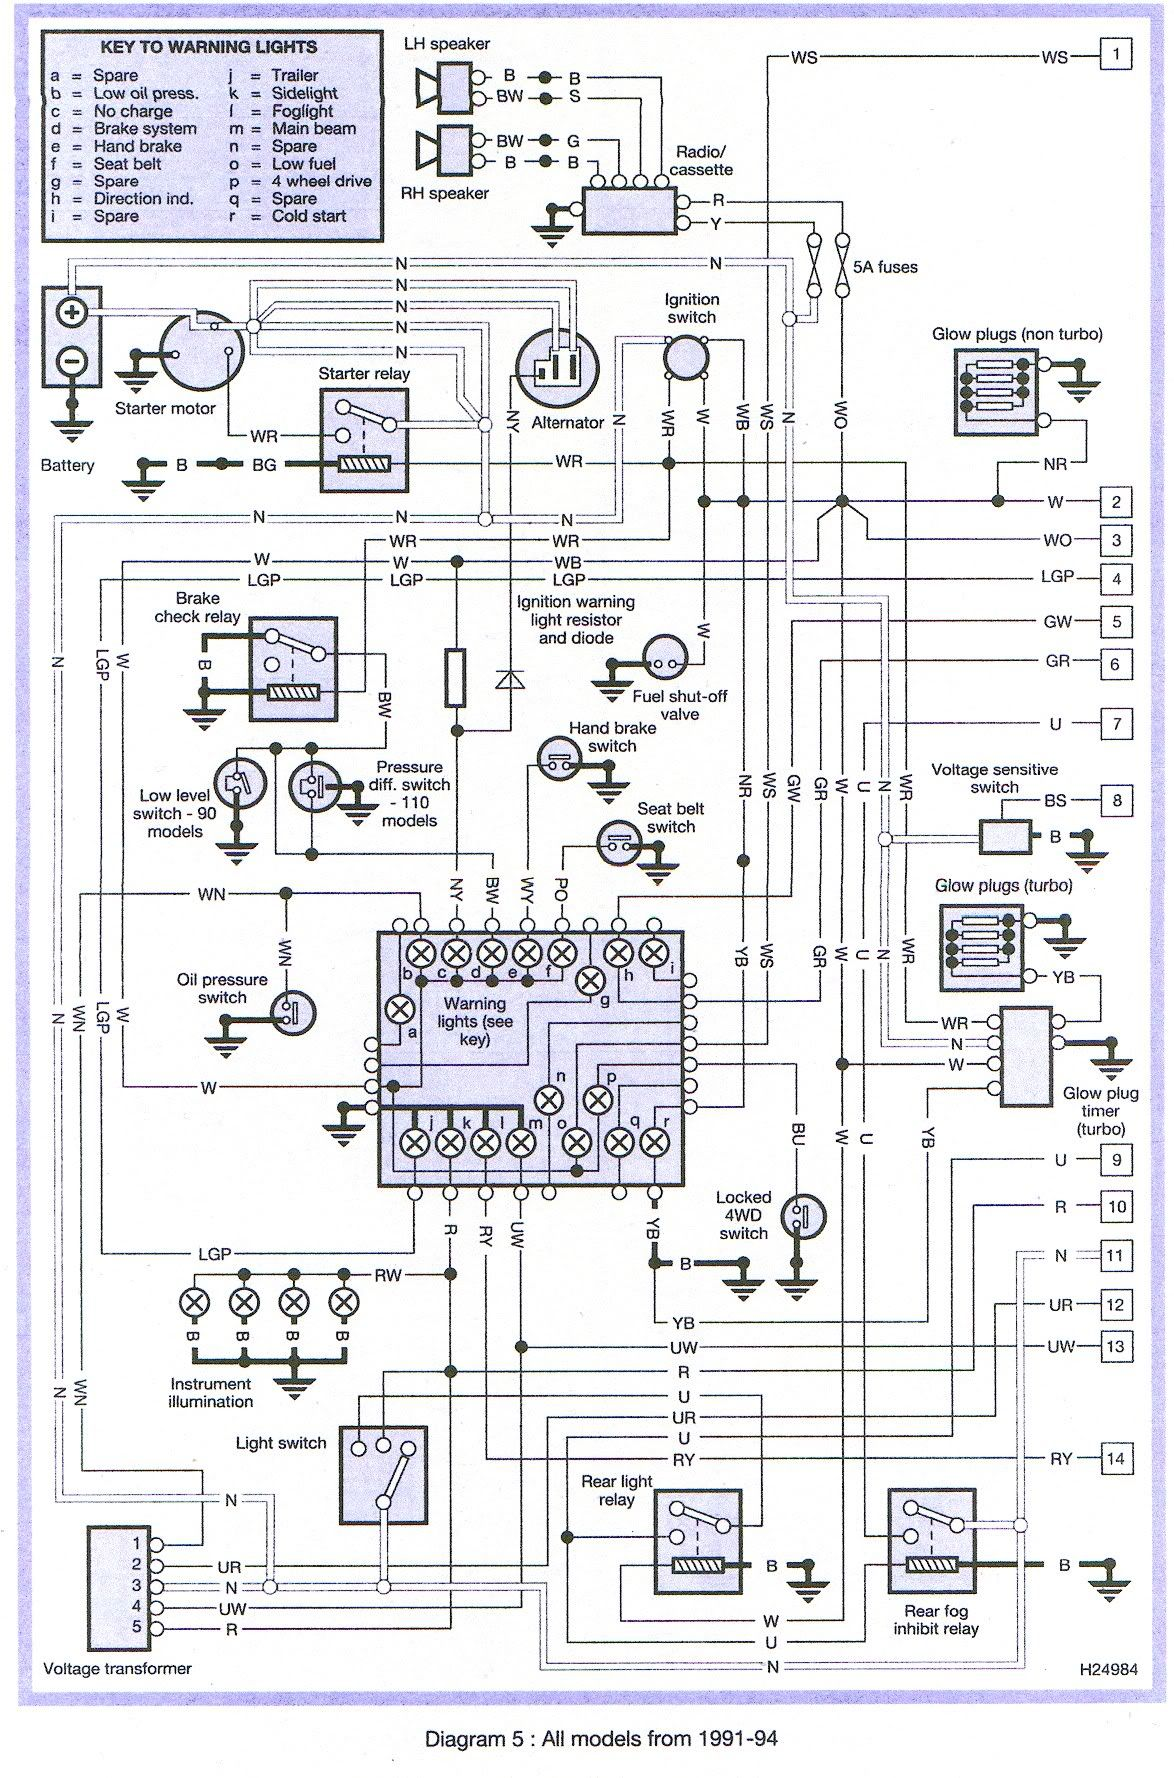 2004 land rover engine diagram wiring diagram img 2008 range rover hse wiring diagram range rover hse wiring diagram [ 1174 x 1778 Pixel ]